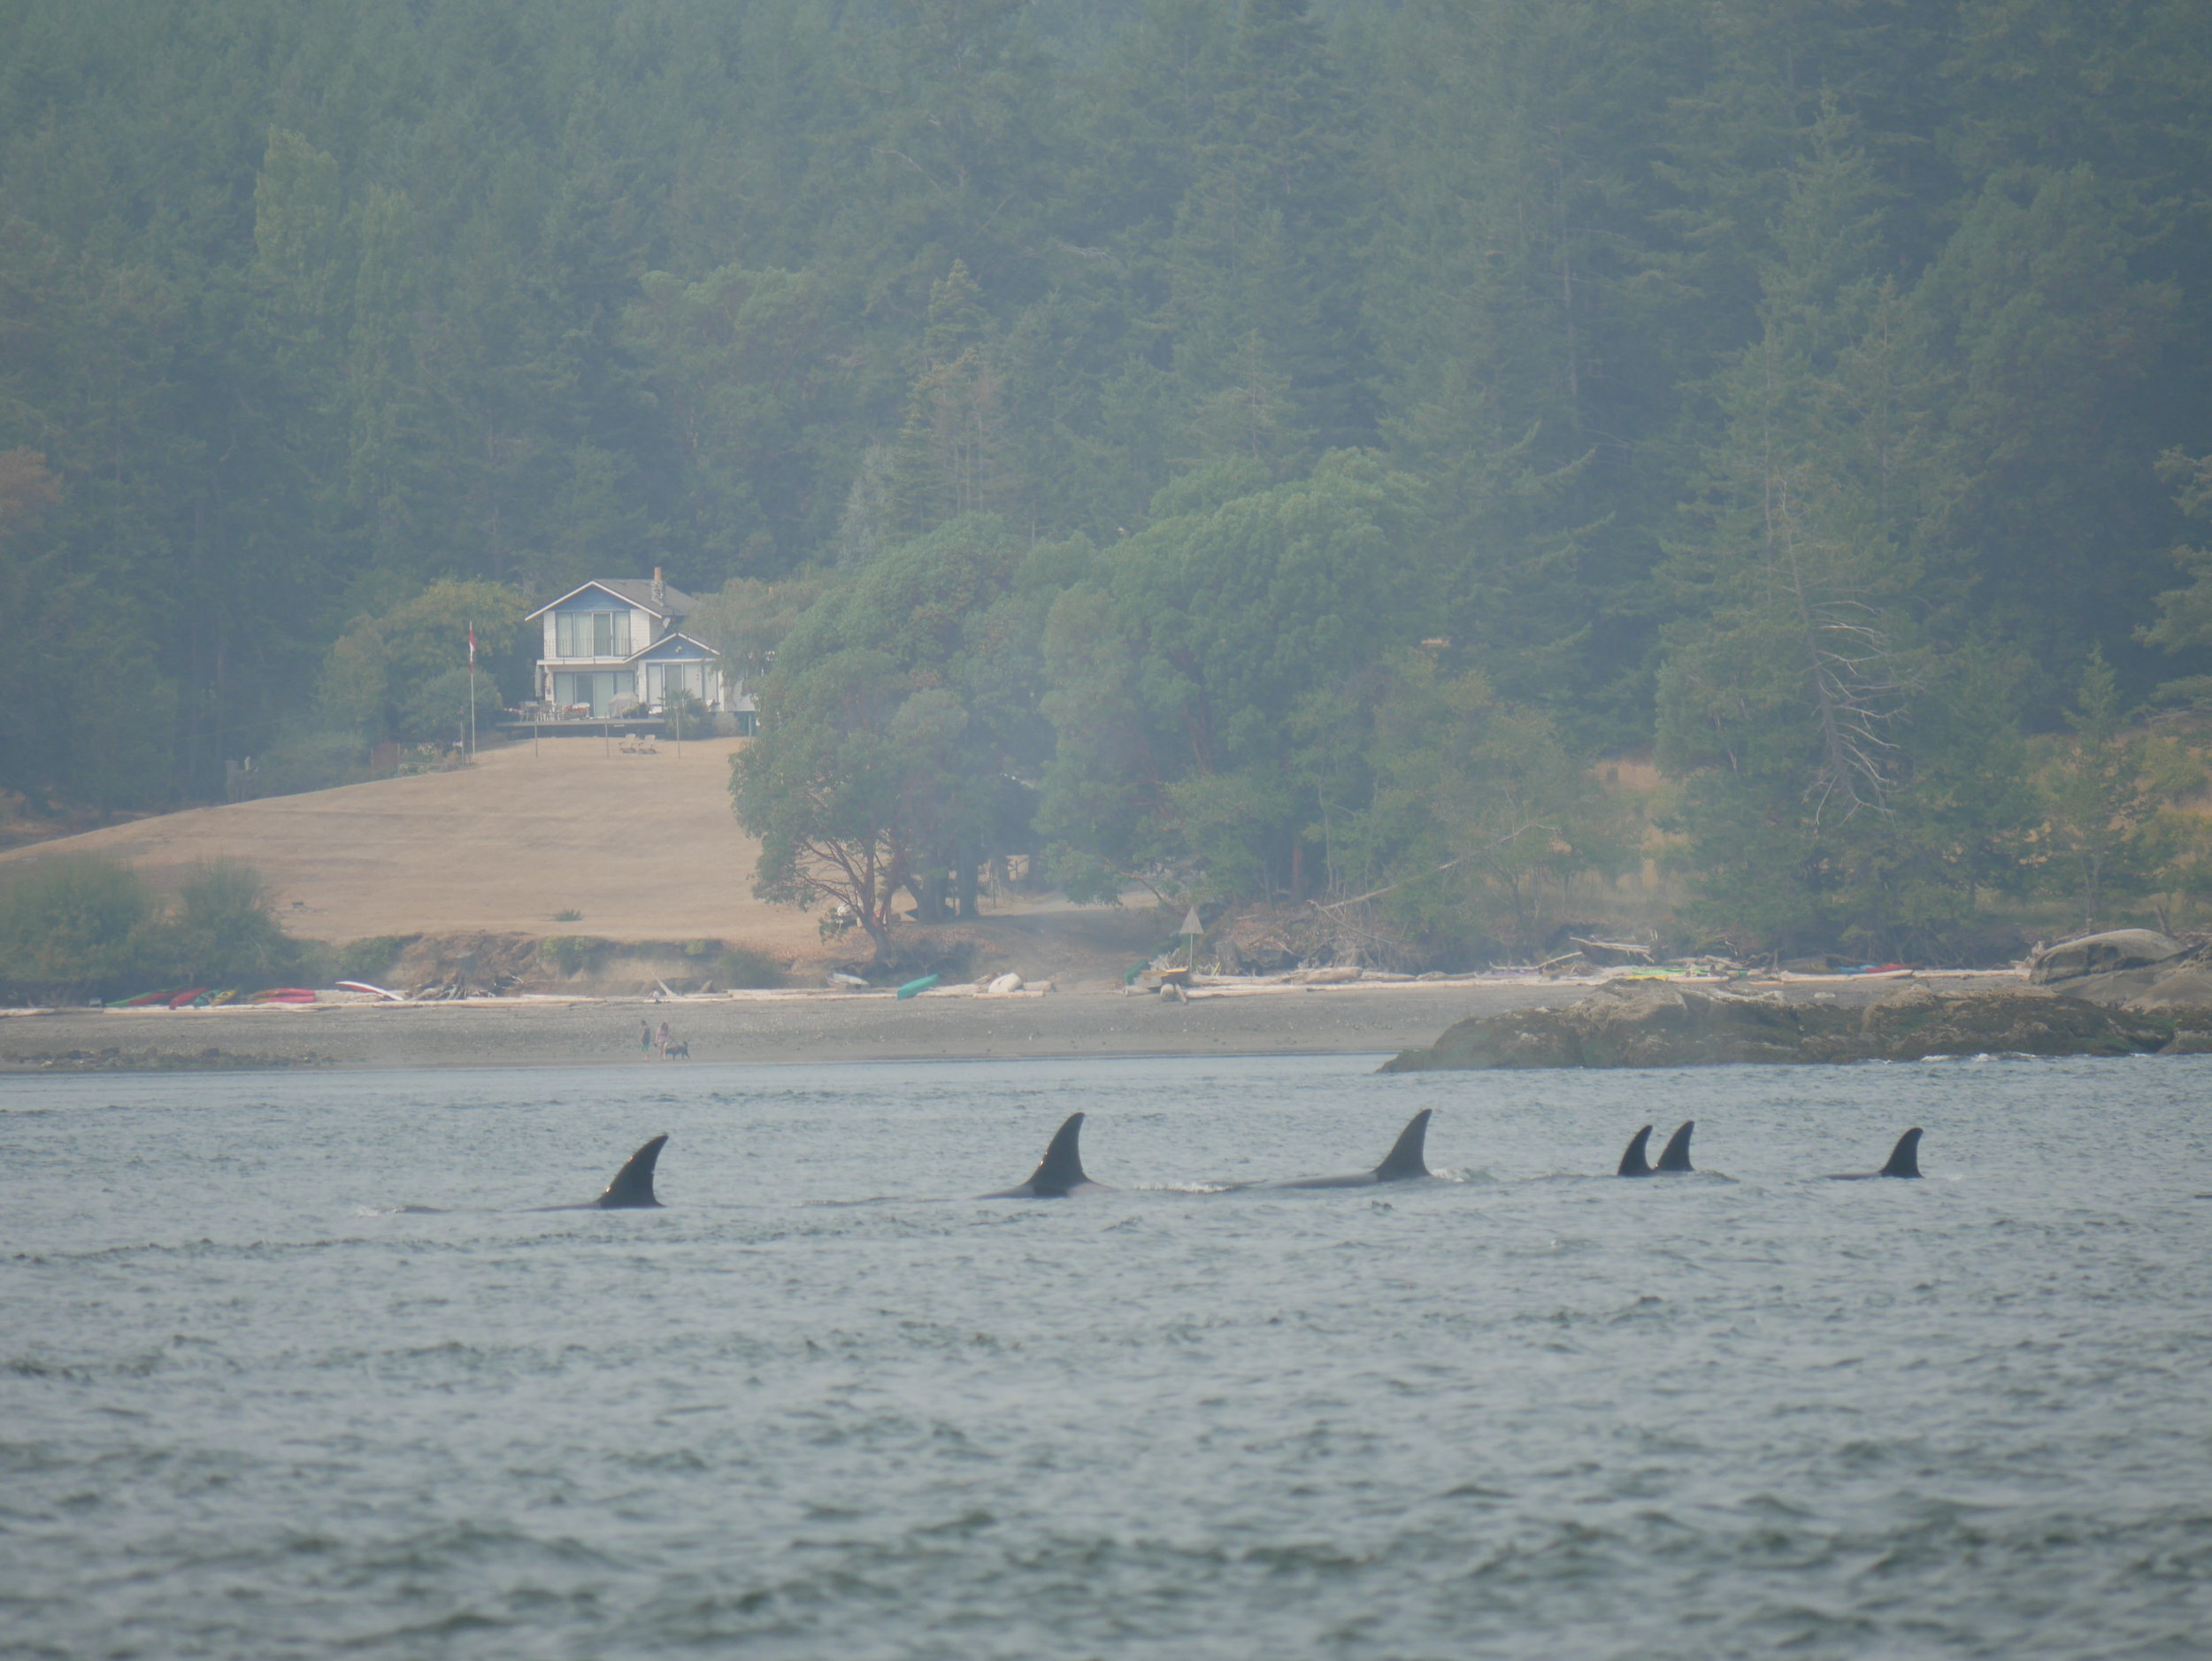 A surfacing of six orca at the same time! Amazing! Photo by Val Watson.